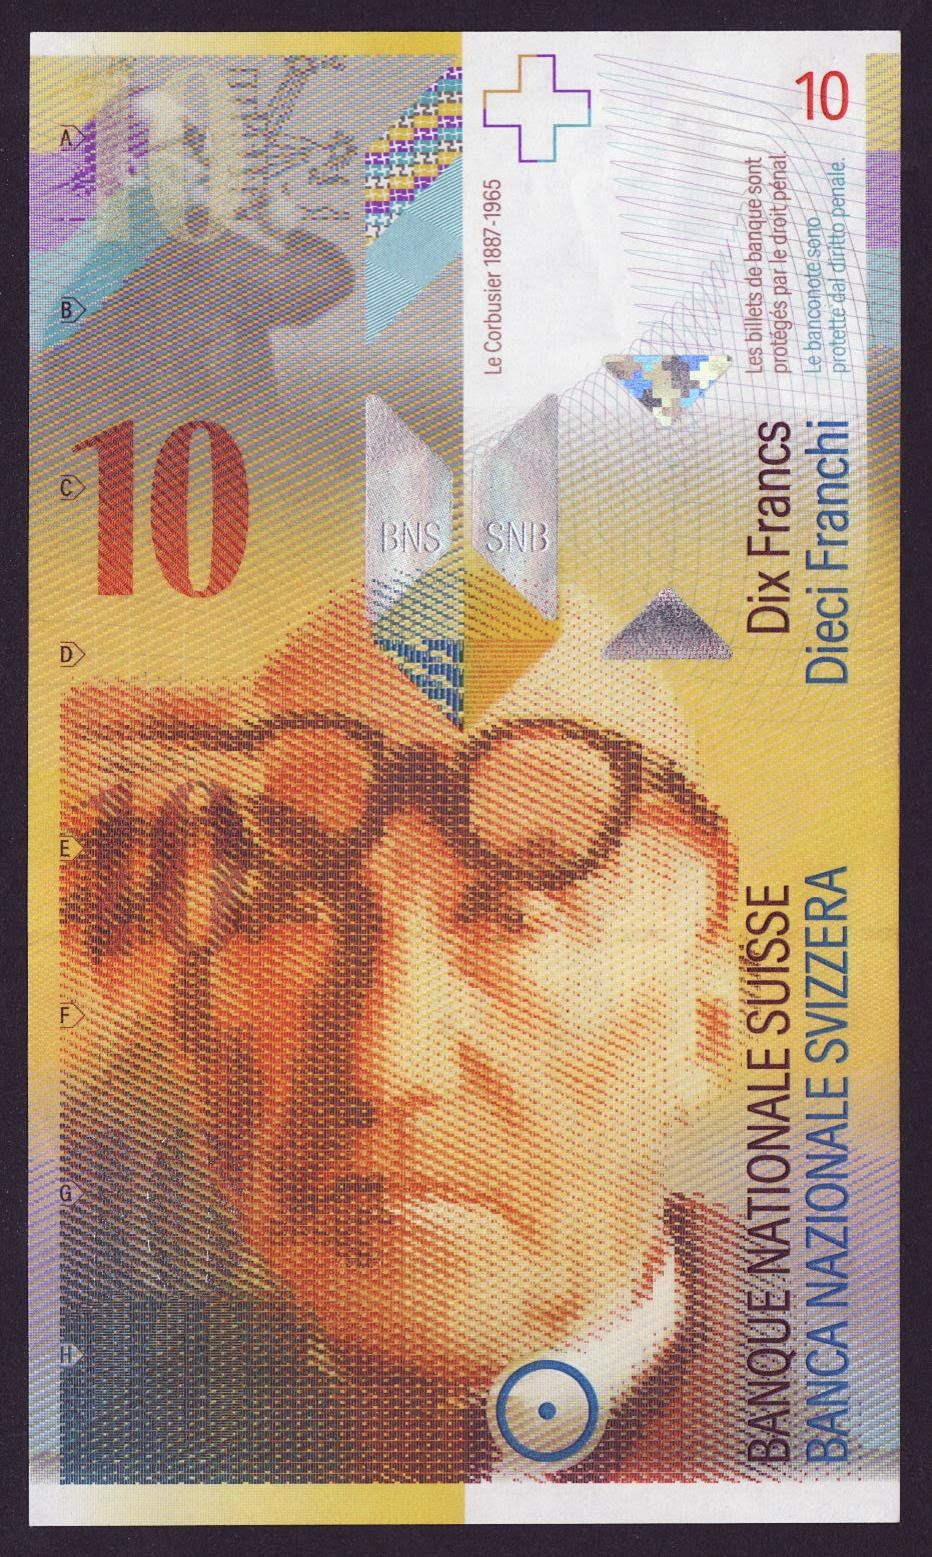 Switzerland Banknotes 10 Swiss Francs note